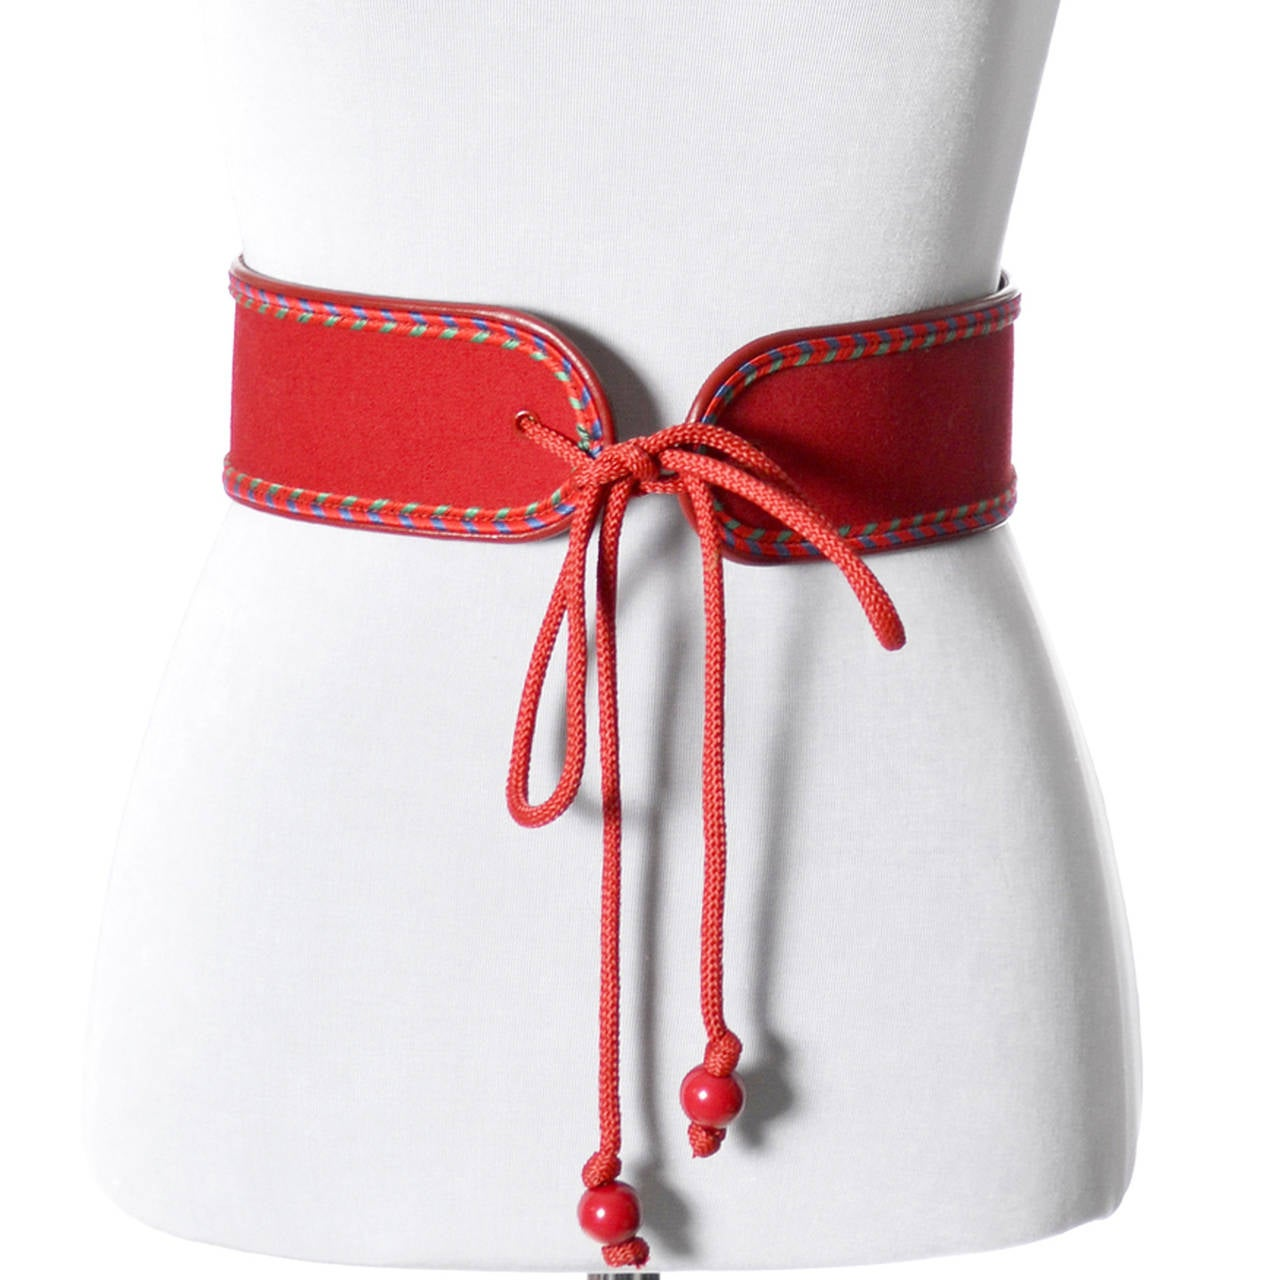 Yves Saint Laurent Vintage YSL Red Corset Belt Russian Peasant Collection 3